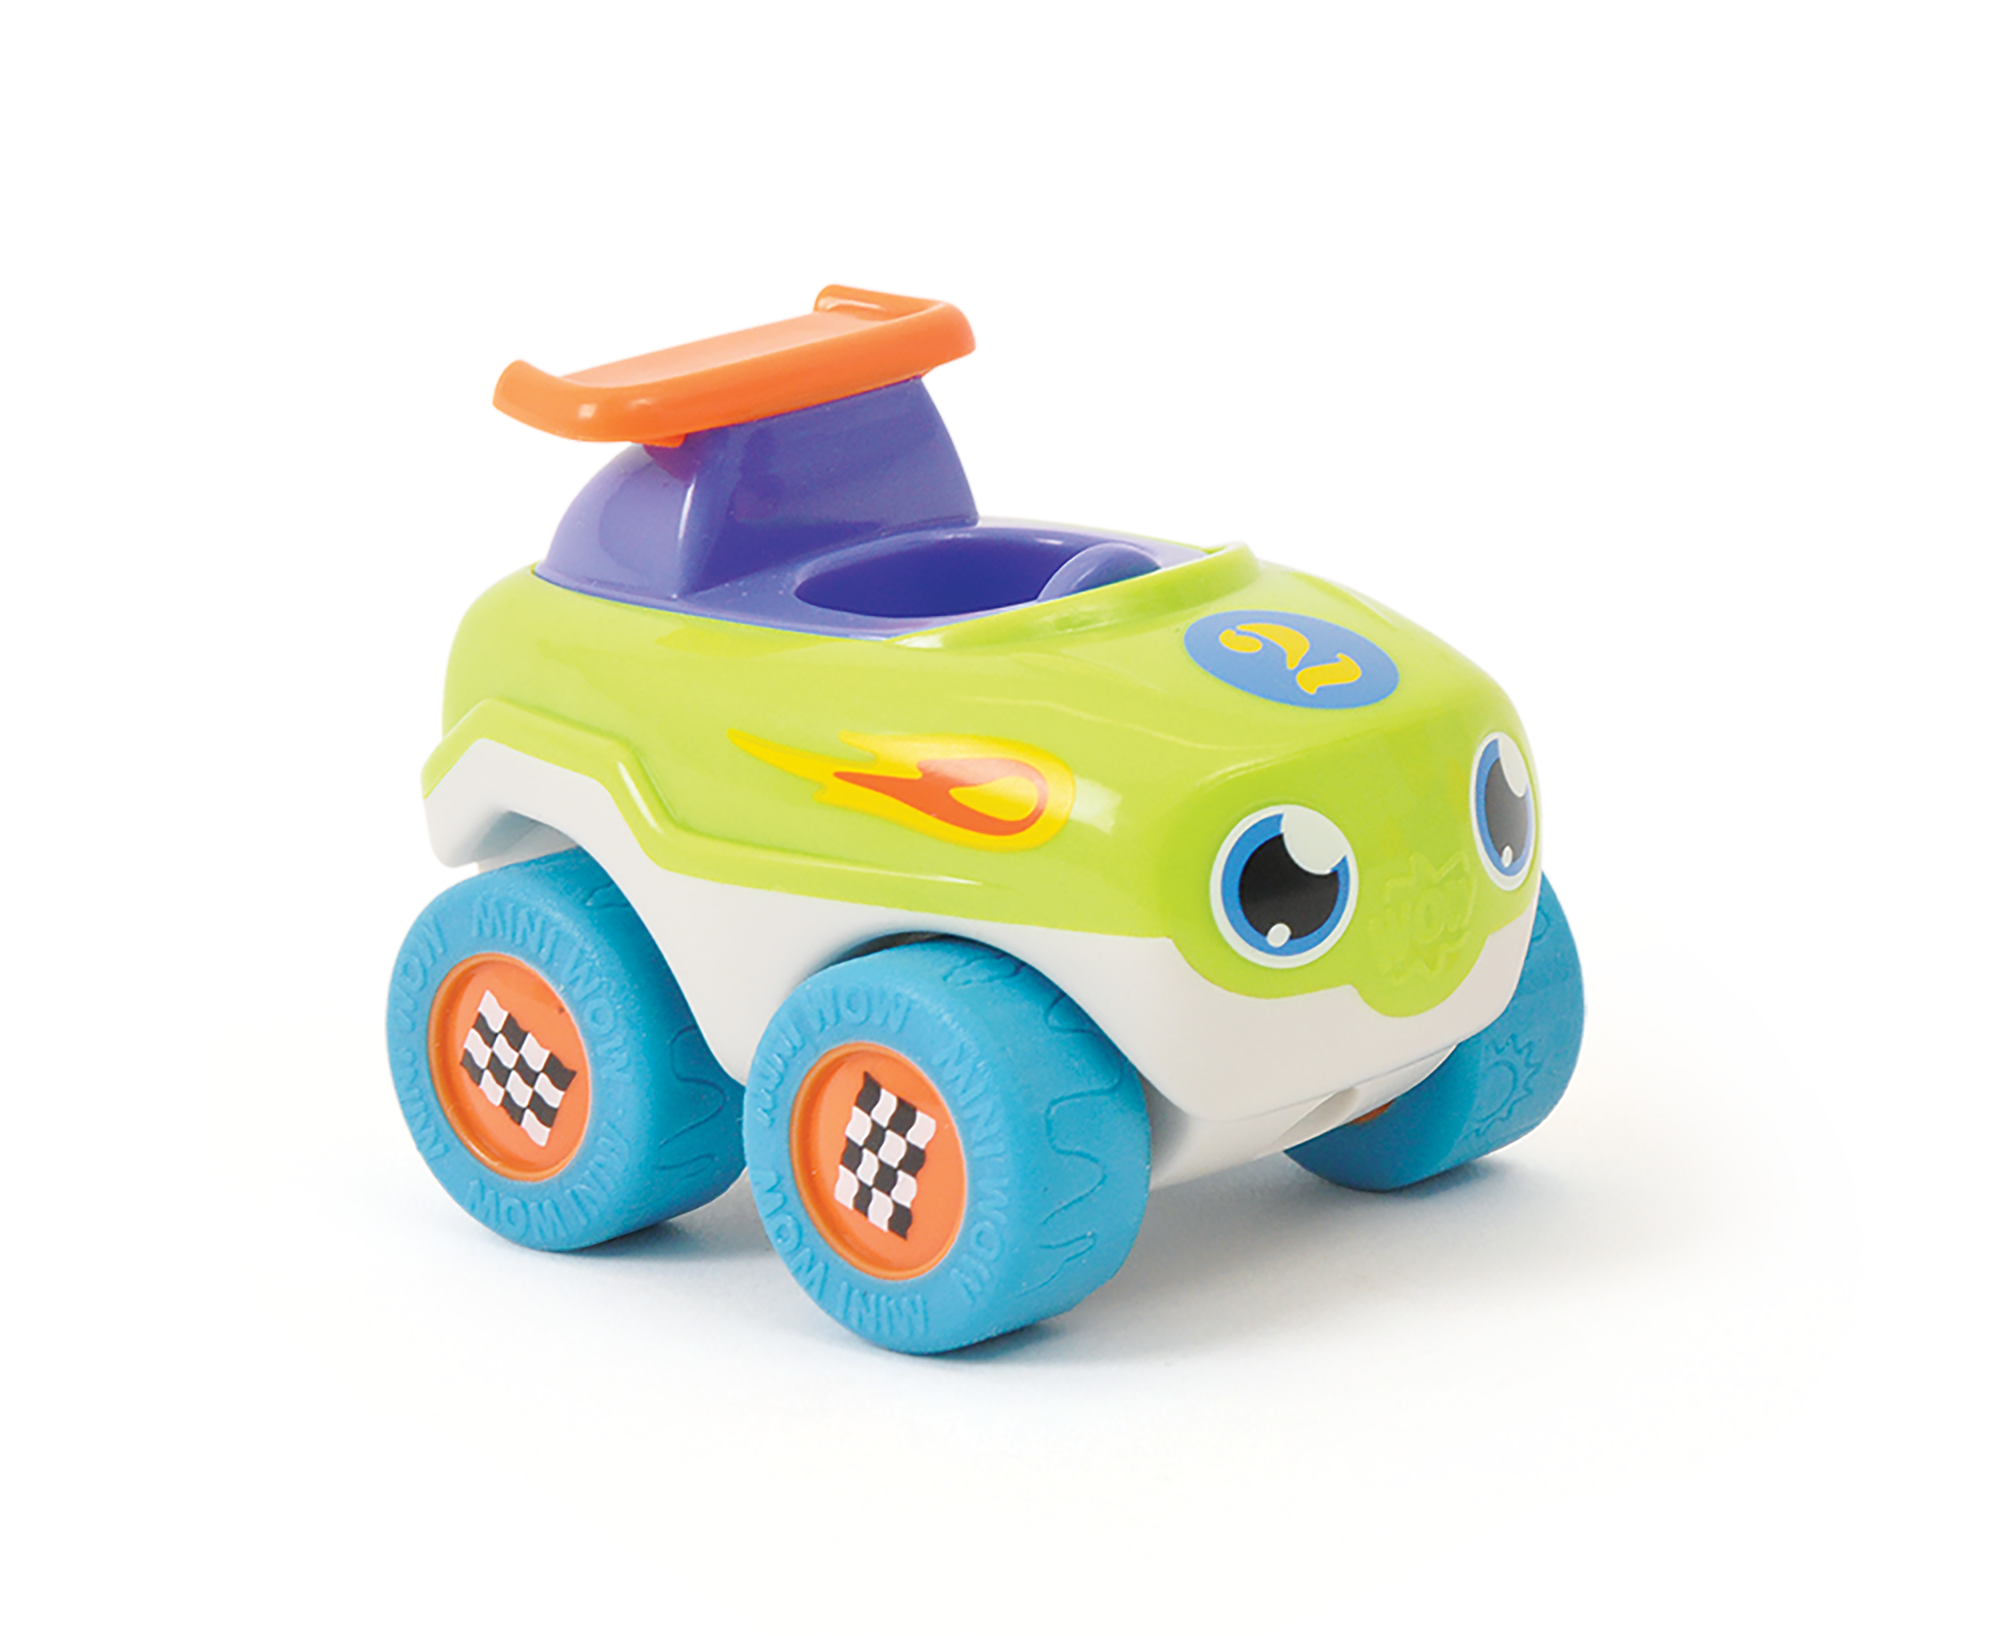 WOW Toys Mini  City Drivers  for babies aged 10 months upwards